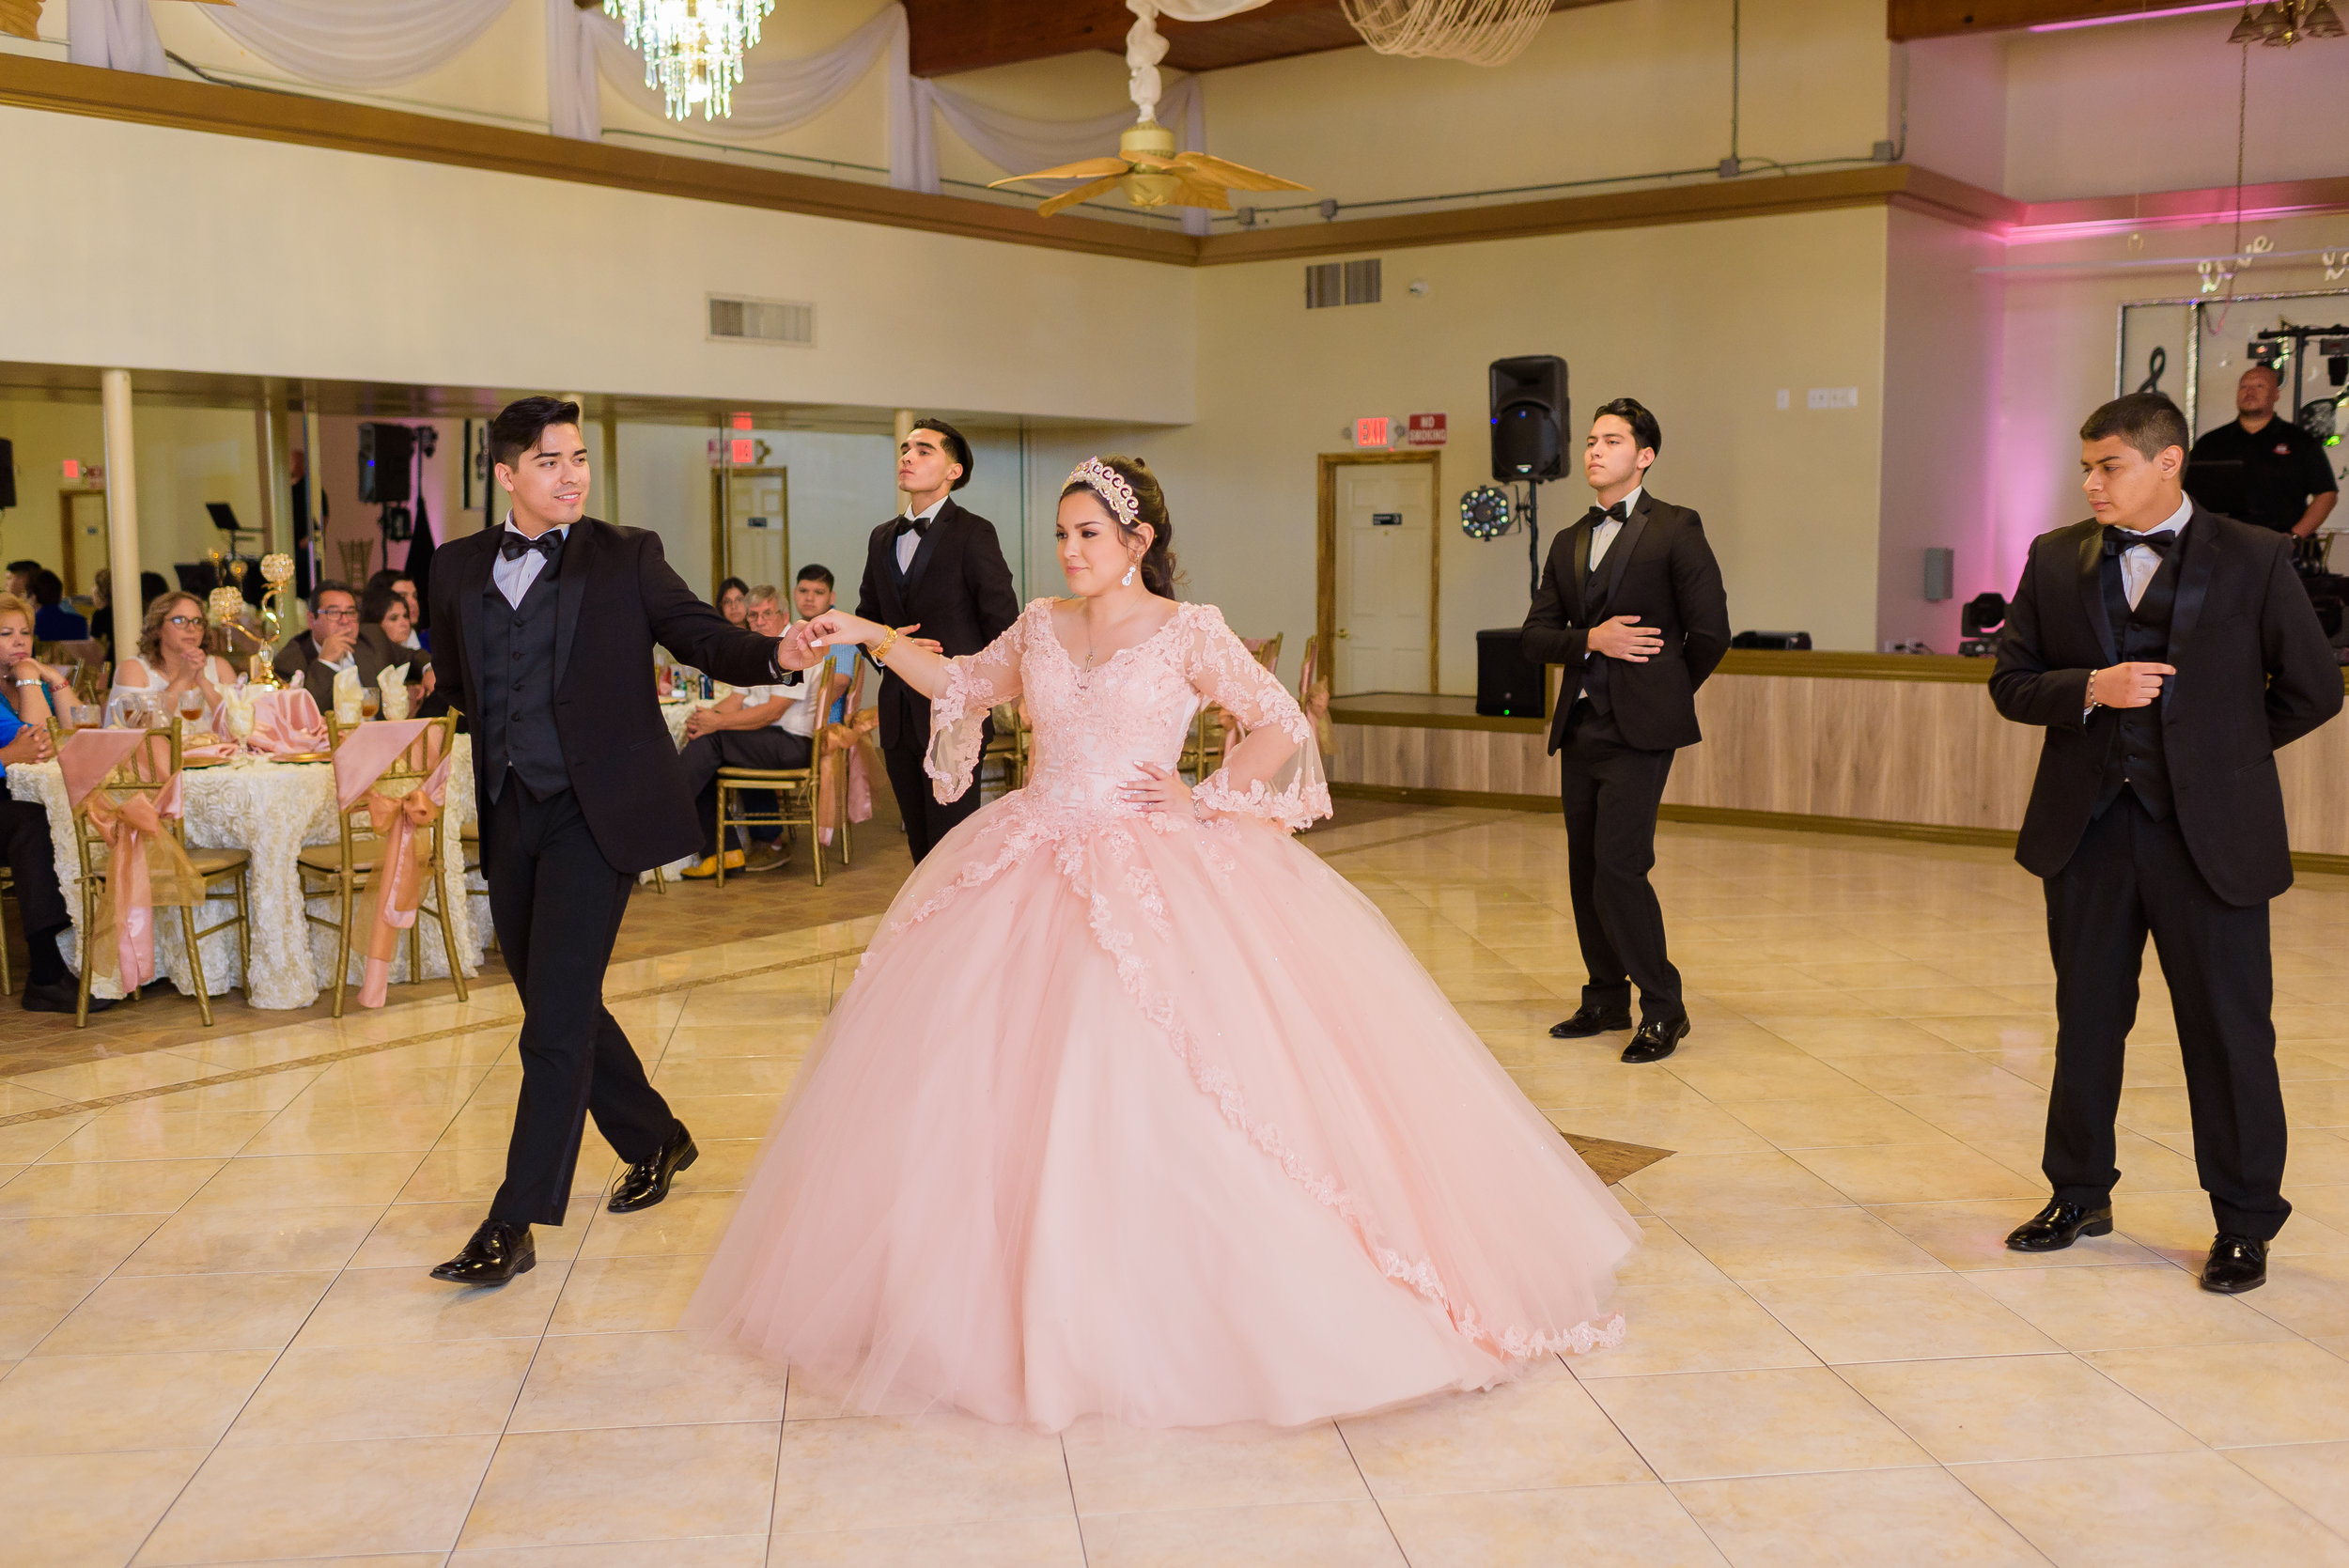 Houston Chambelanes Co  - Quinceañera Choreographies and